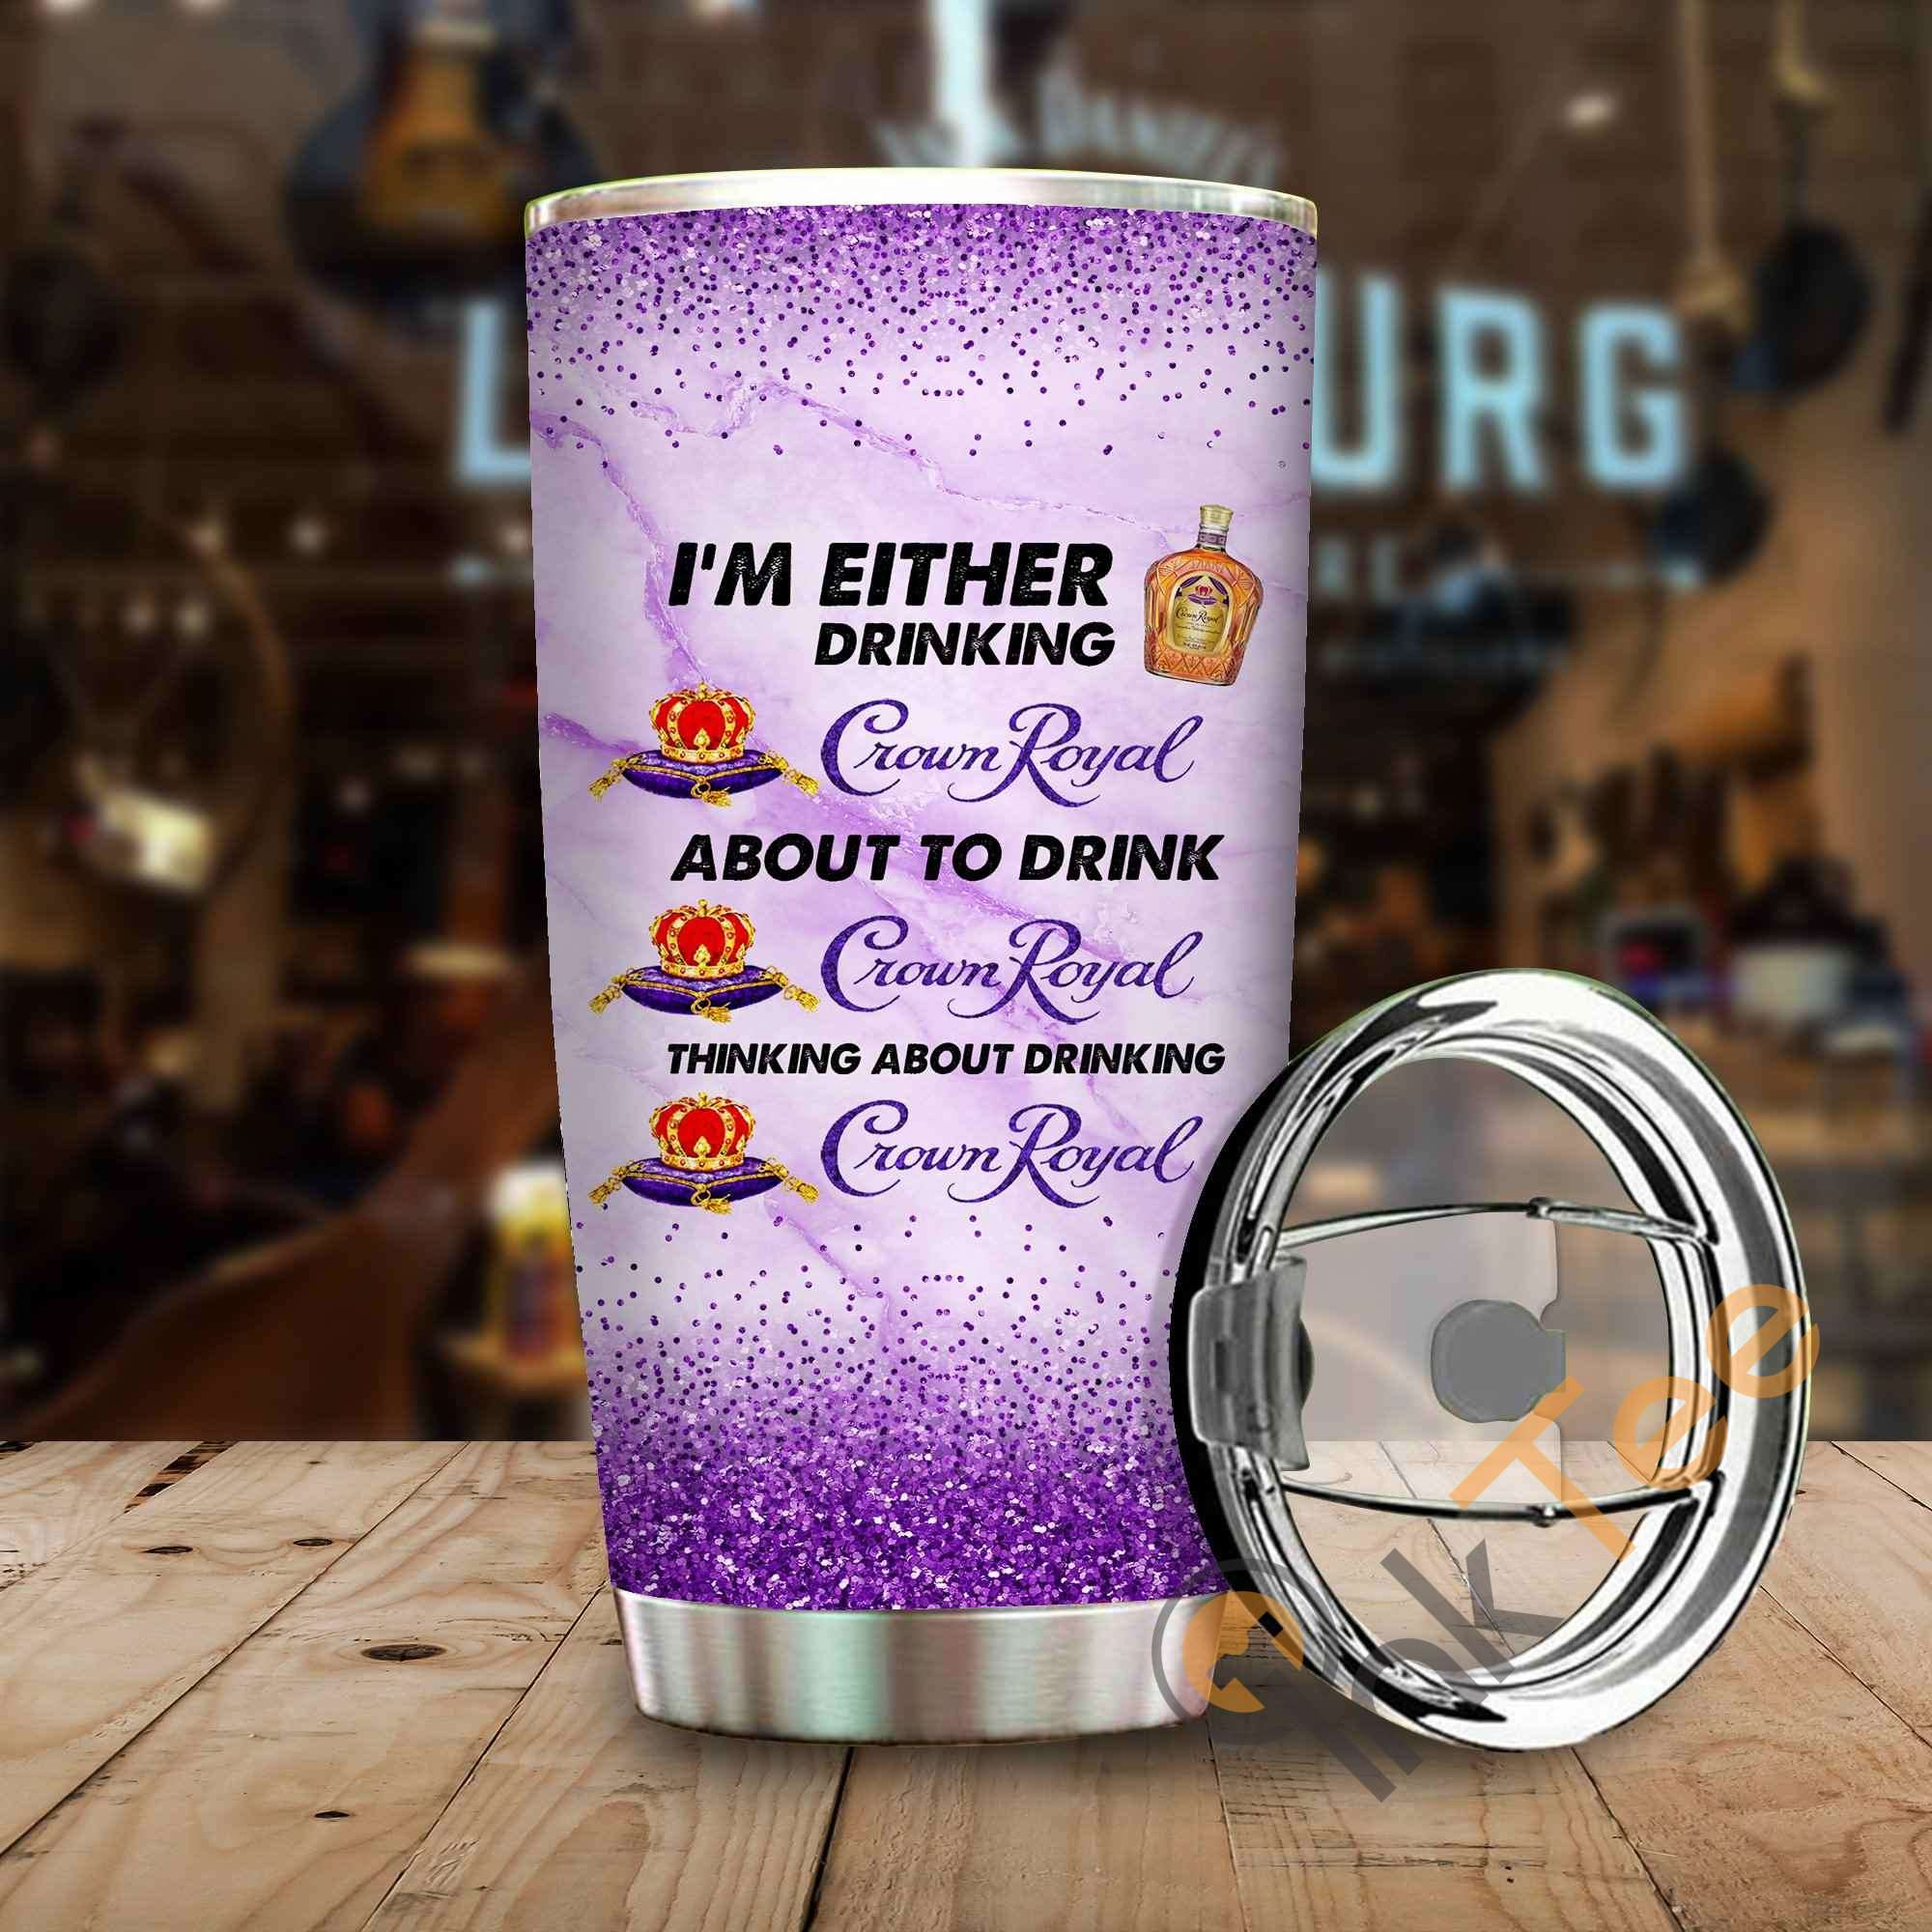 Im Either Drinking Crown Royal Amazon Best Seller Sku 3915 Stainless Steel Tumbler